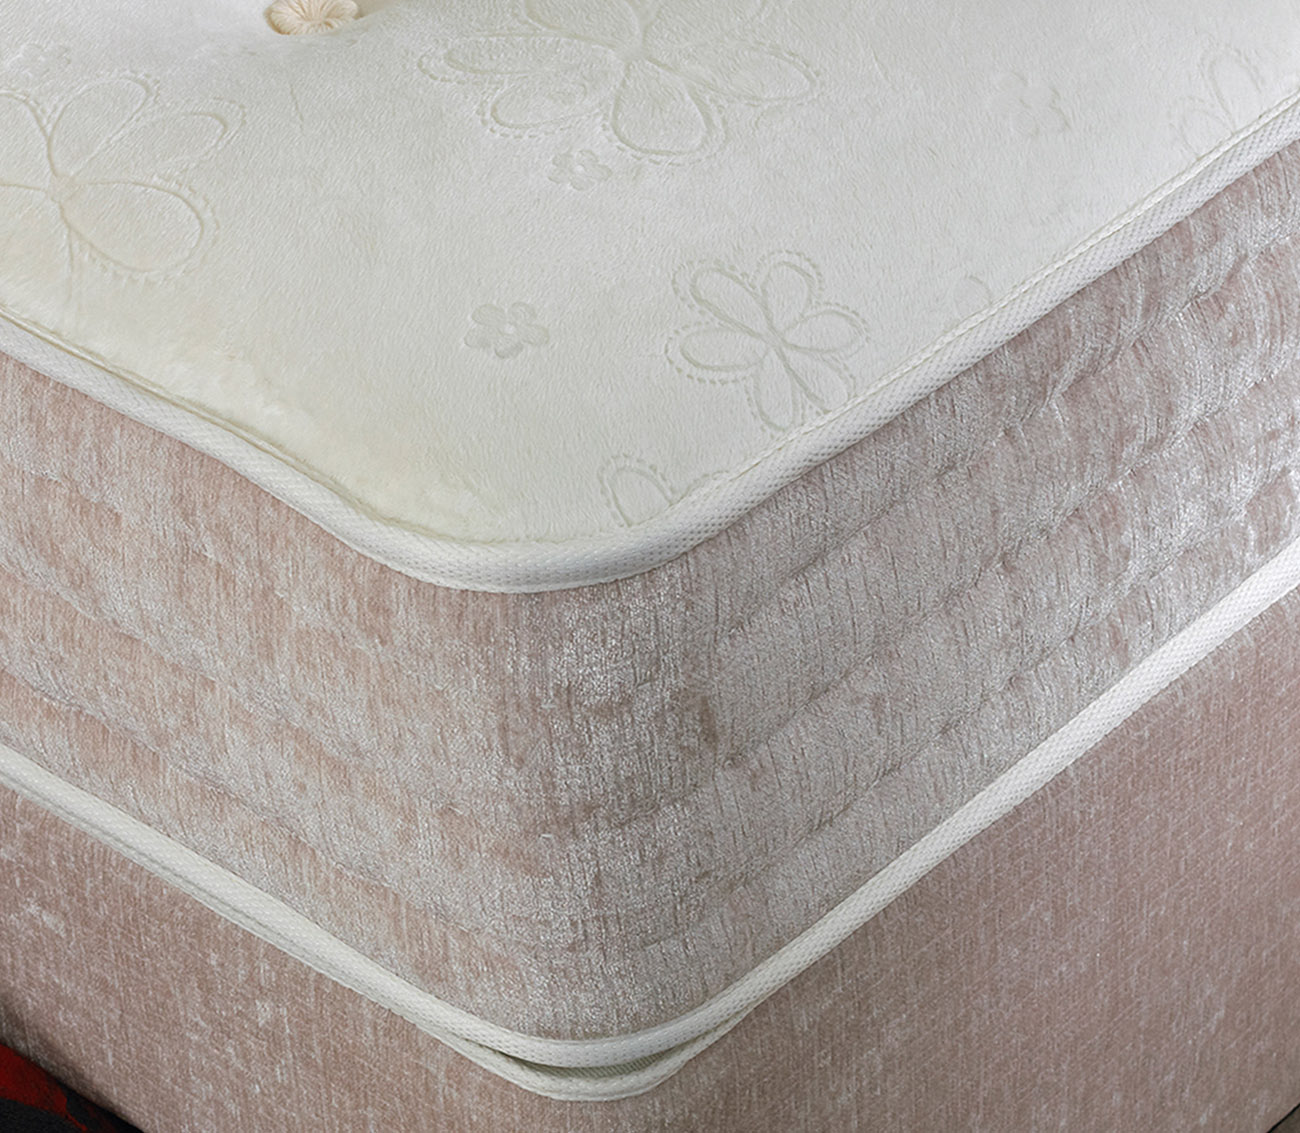 highgrove_heaven_mattress_main